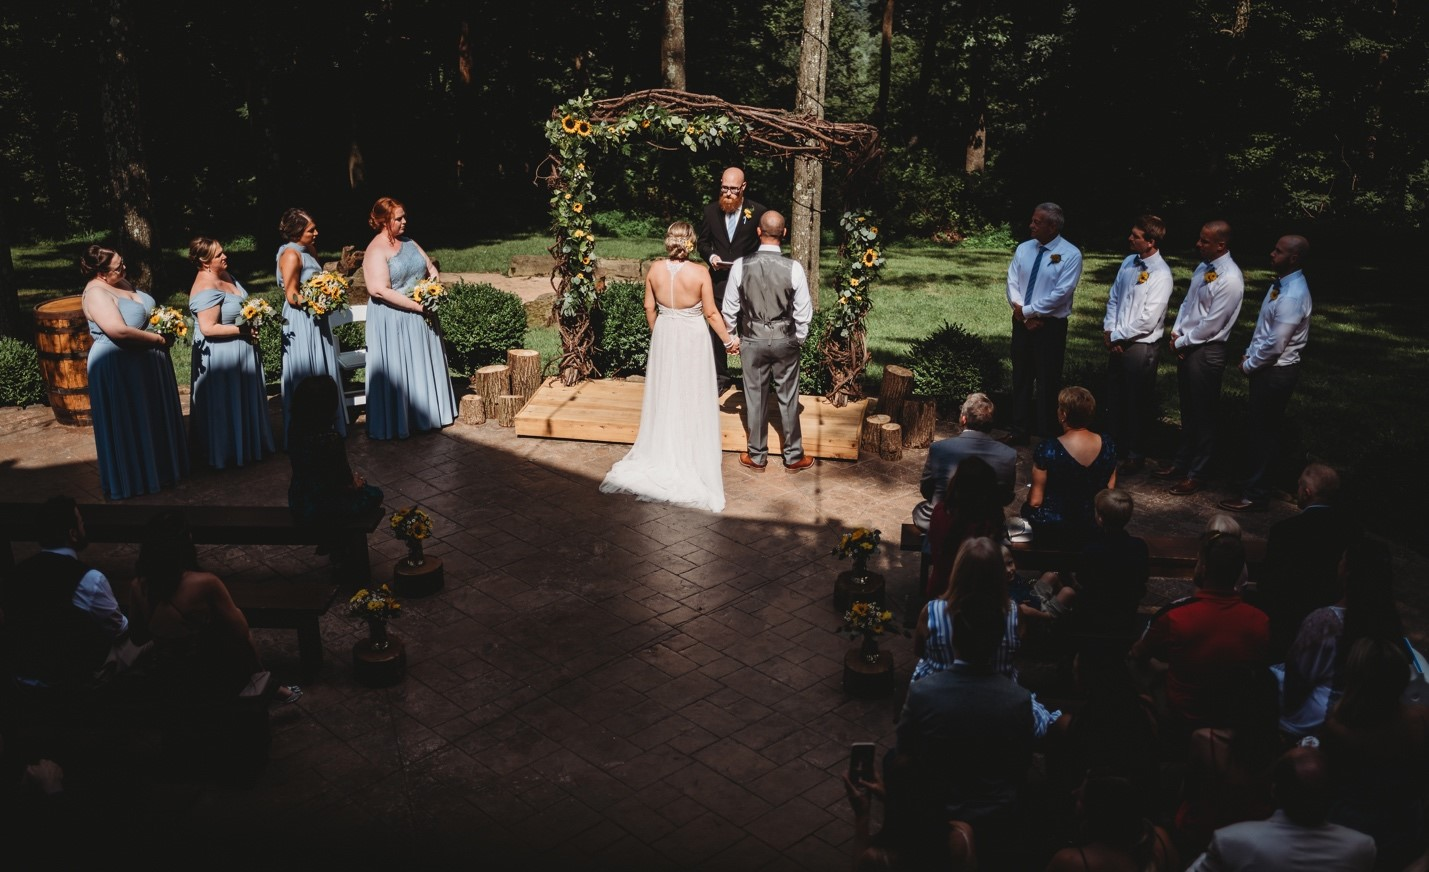 Allison + Nick's Charming Rustic Ceremony at The Grand Barn